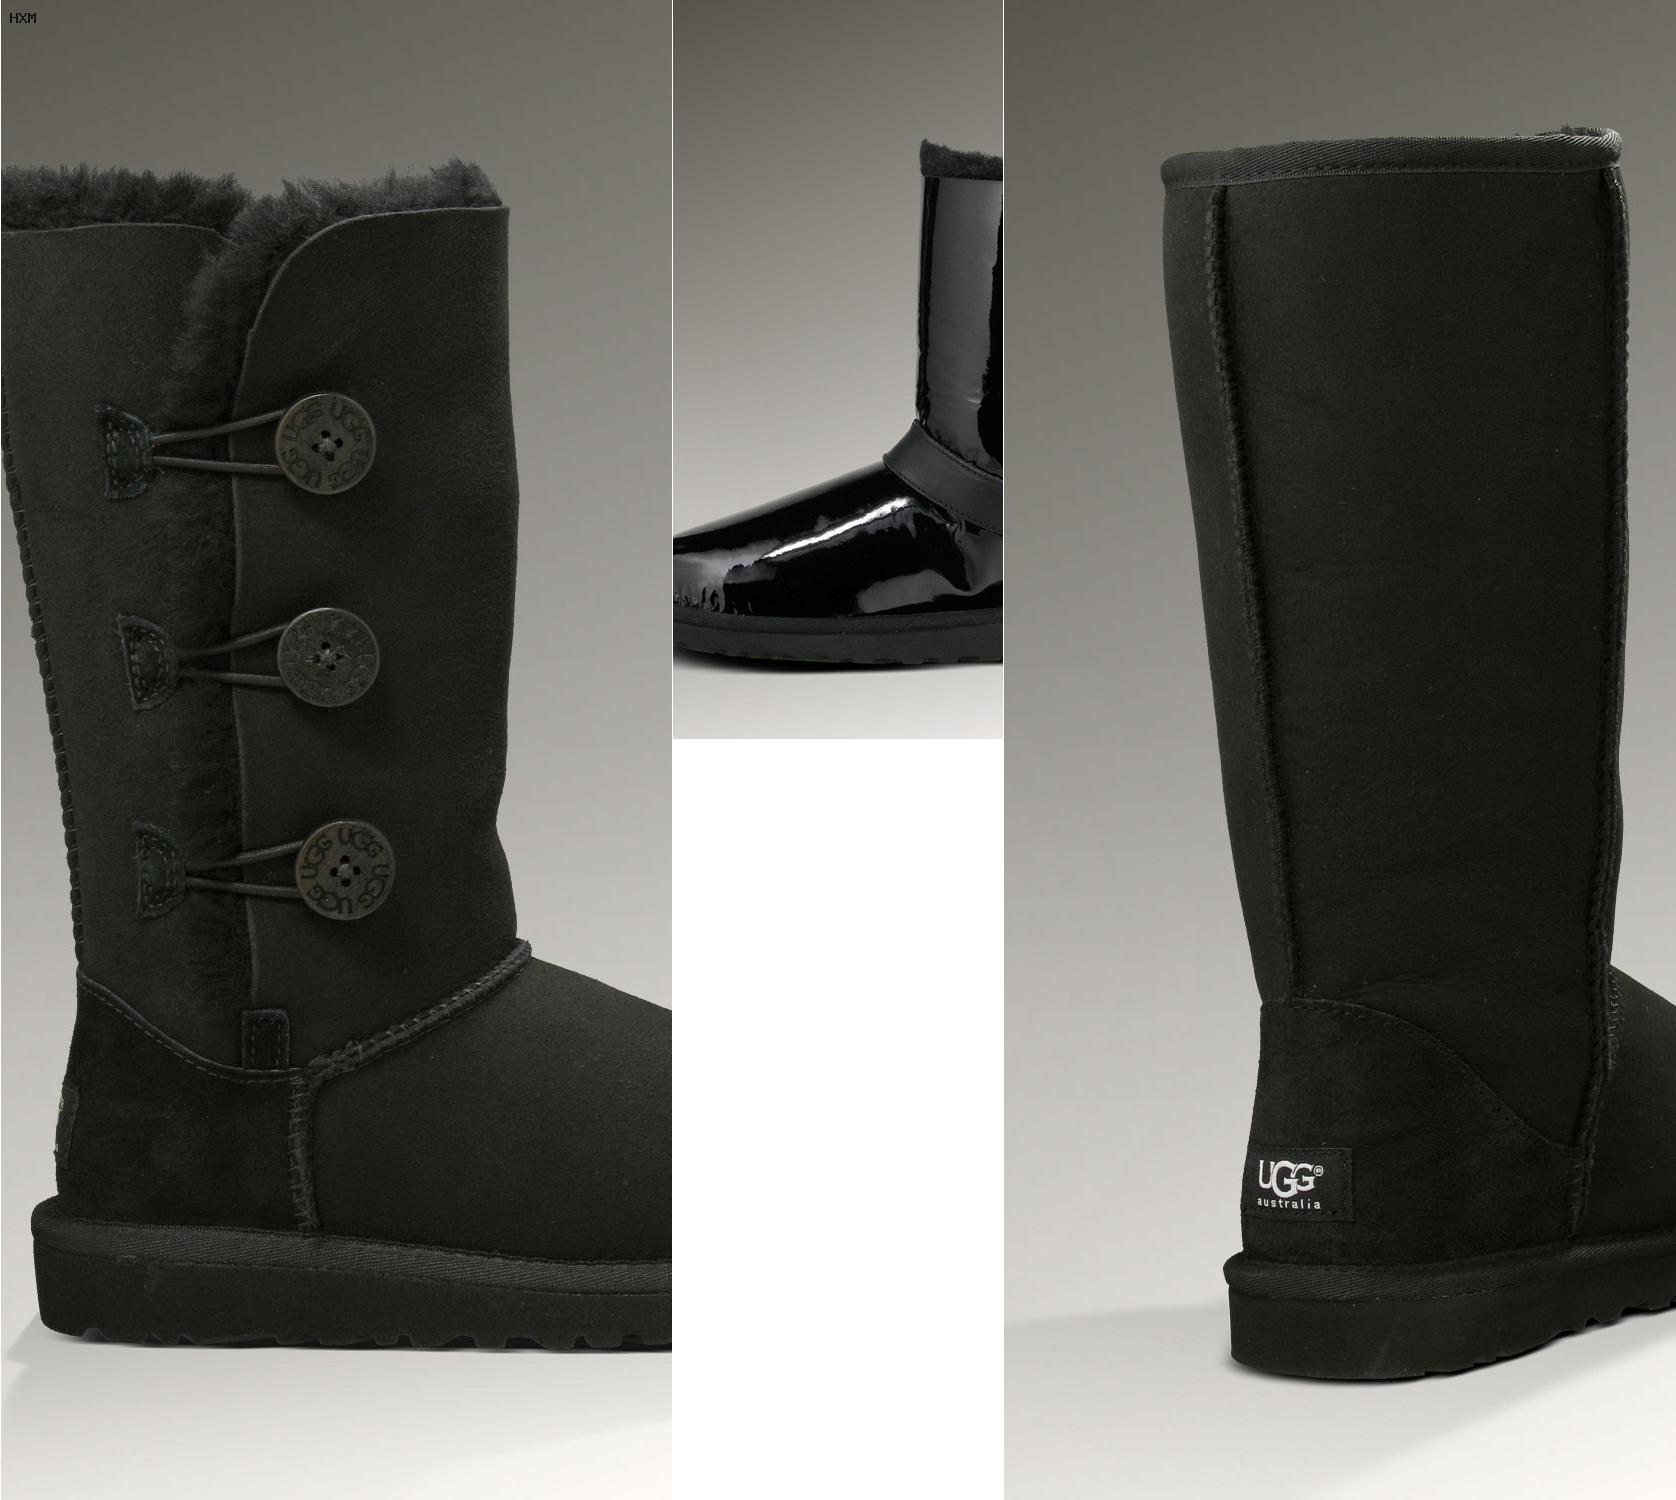 ugg boots online shopping india